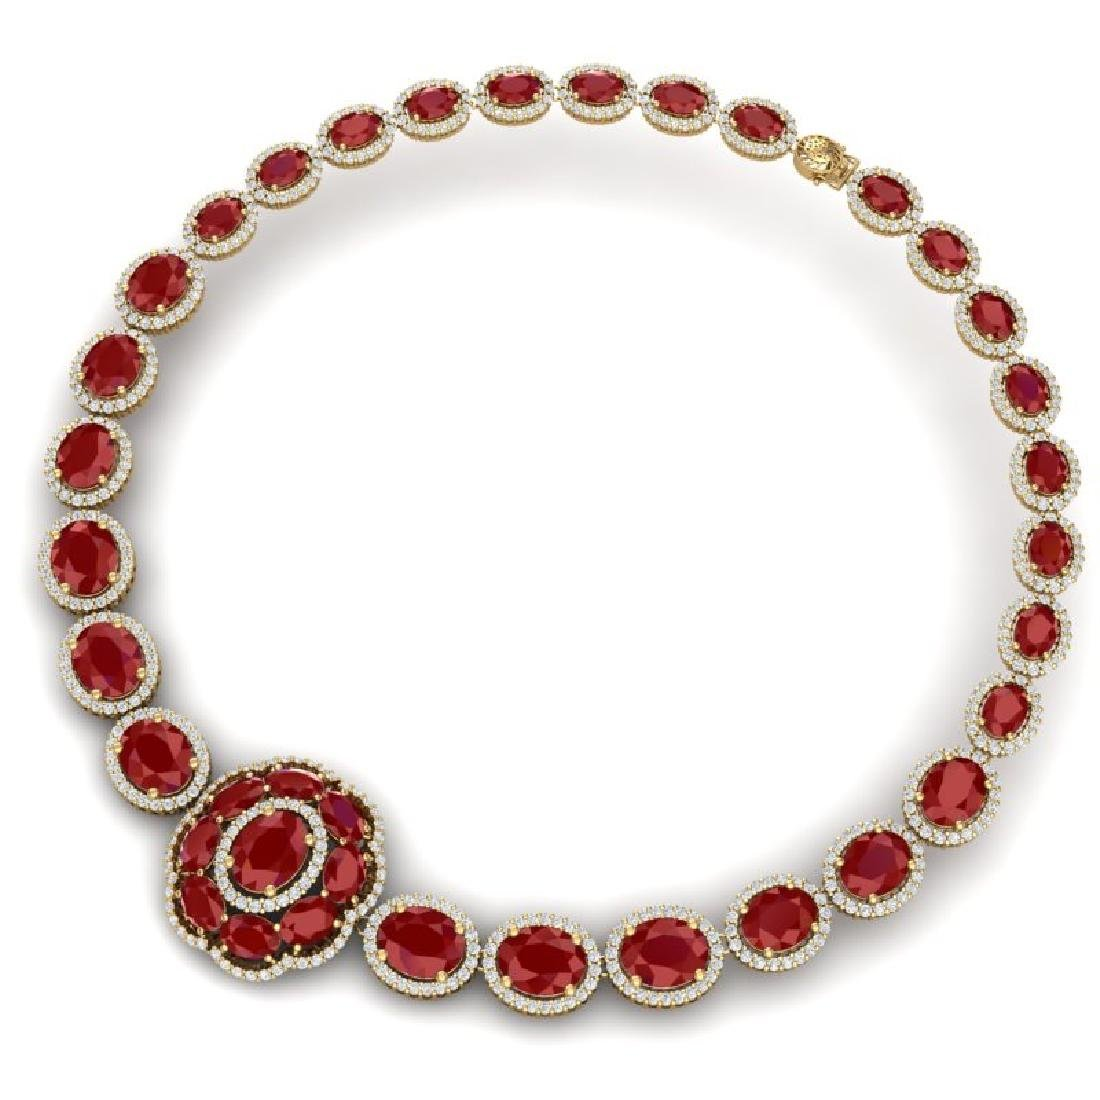 58.33 CTW Royalty Ruby & VS Diamond Necklace 18K Yellow - 3